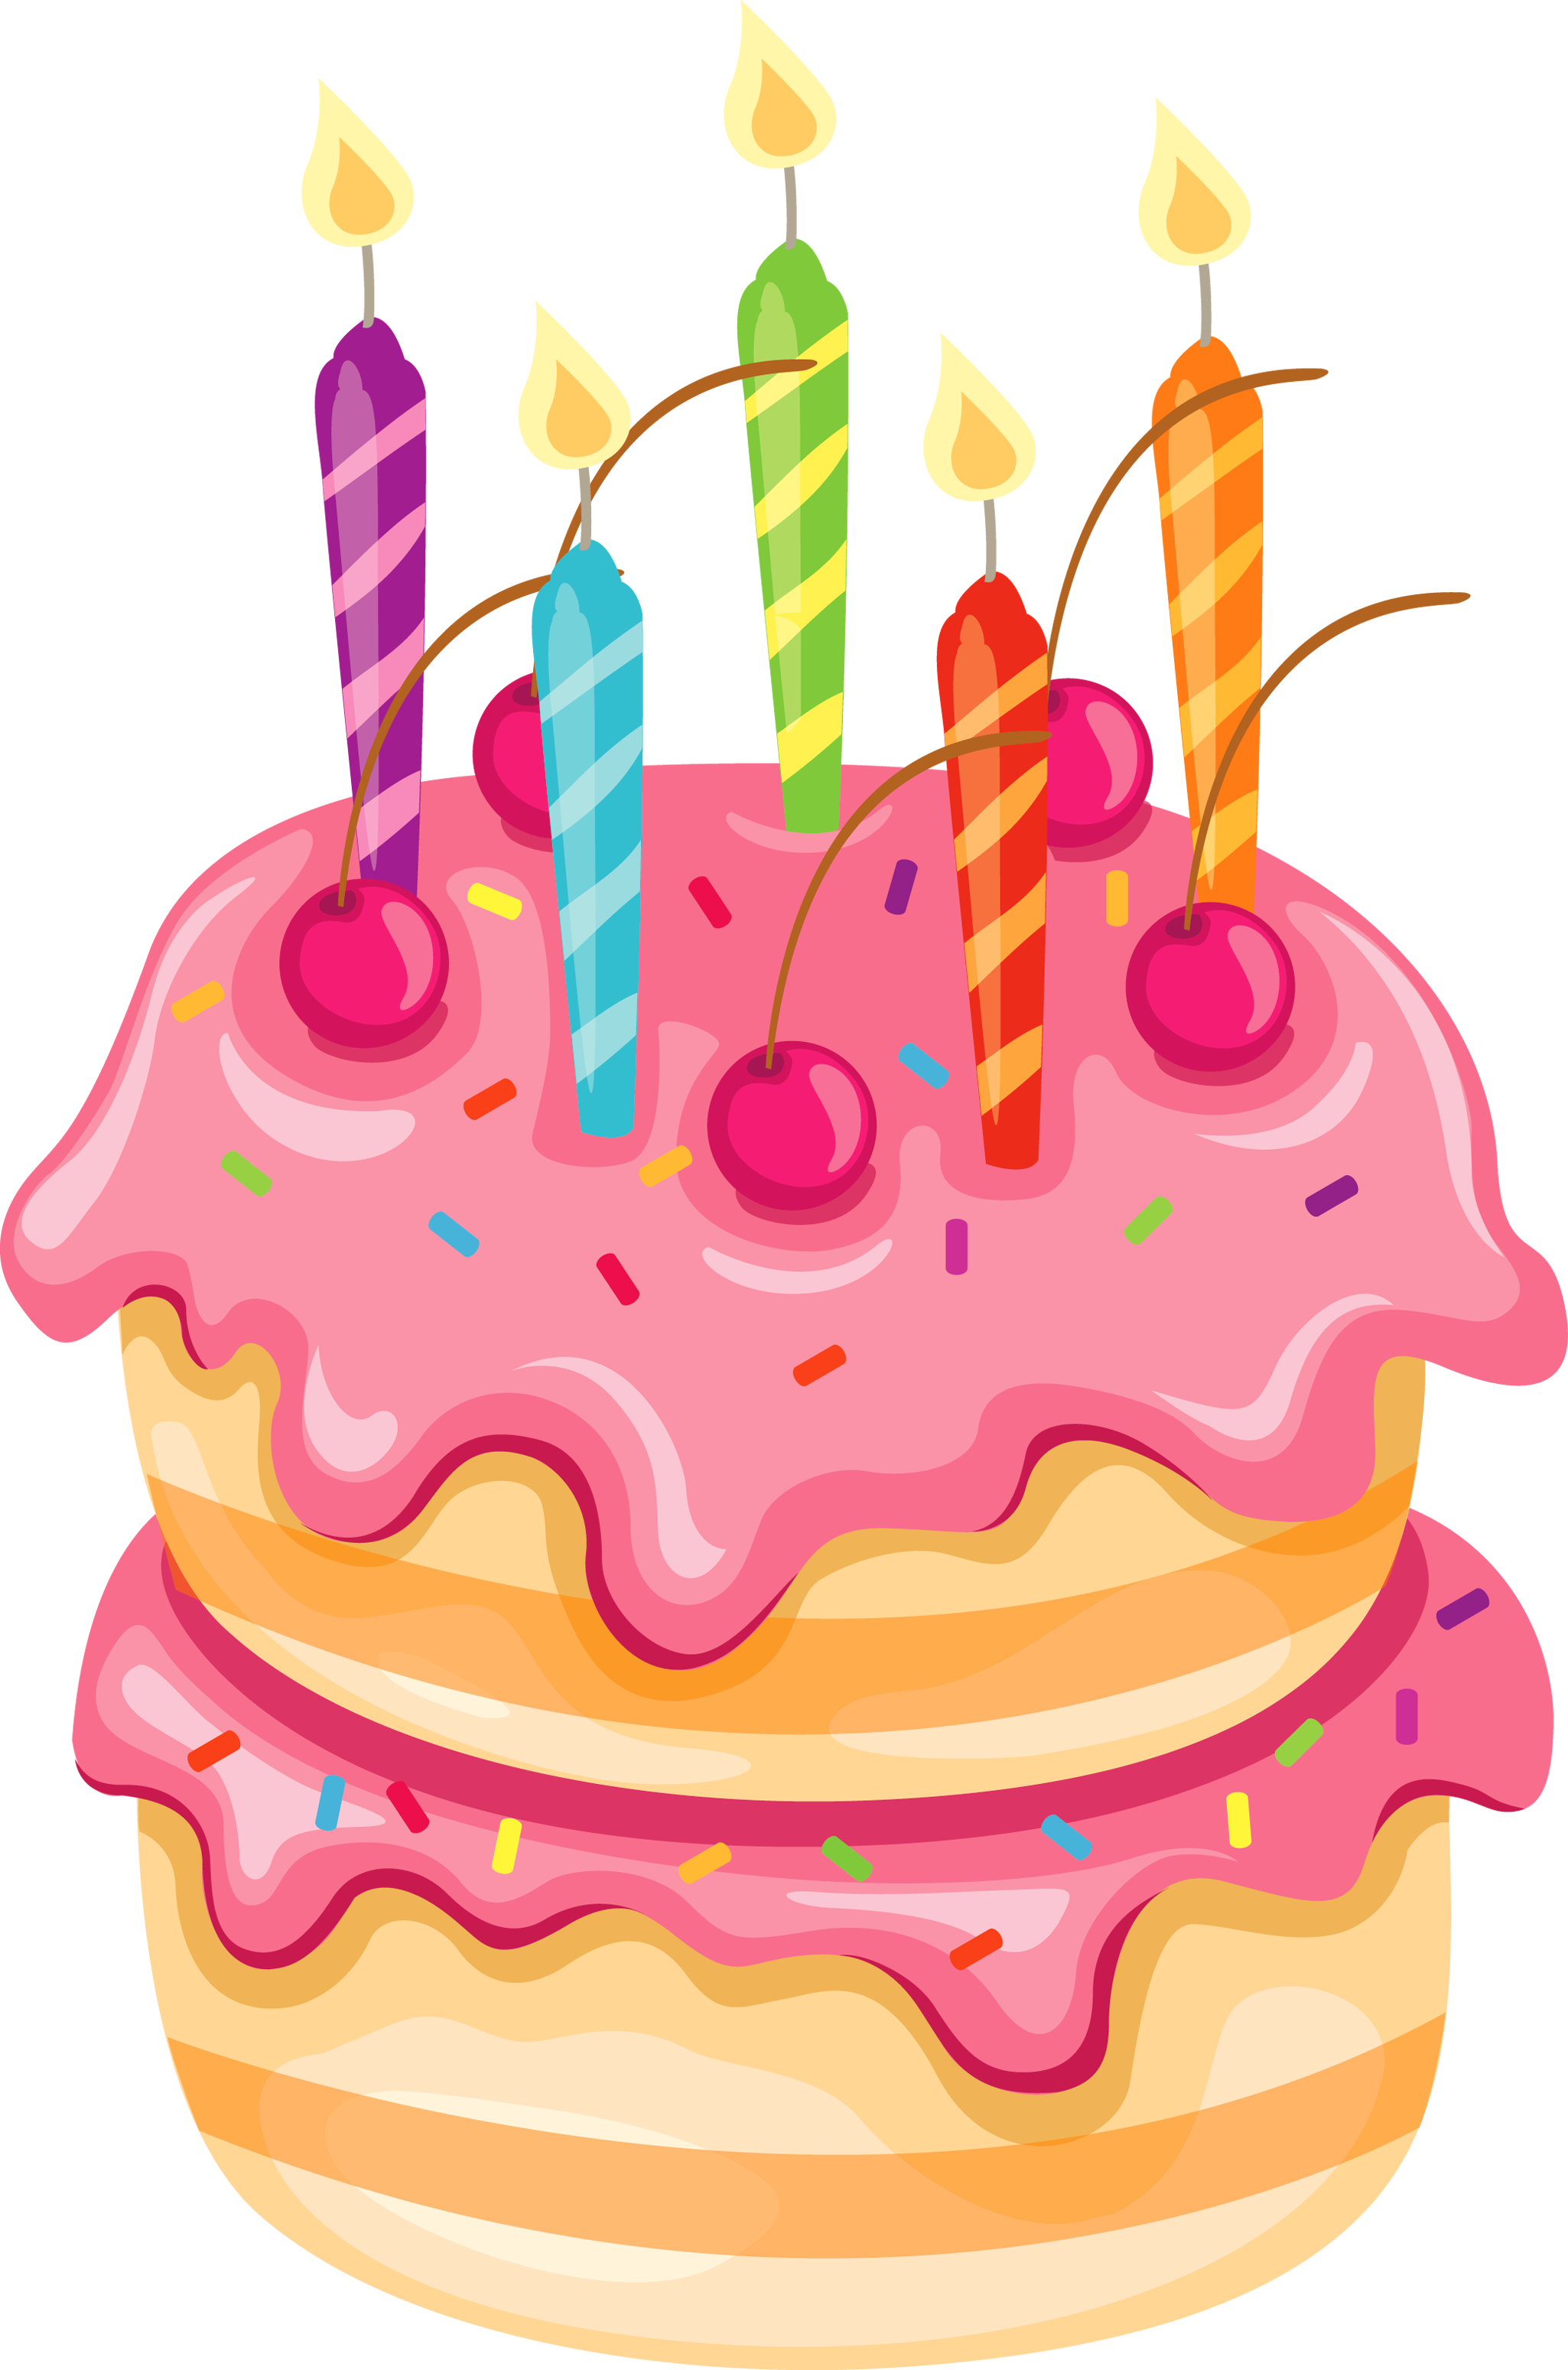 Clip Art Of Birthday Cake With Candles : Pink Cake with Candles PNG Clipart ANIVERSARIS ...